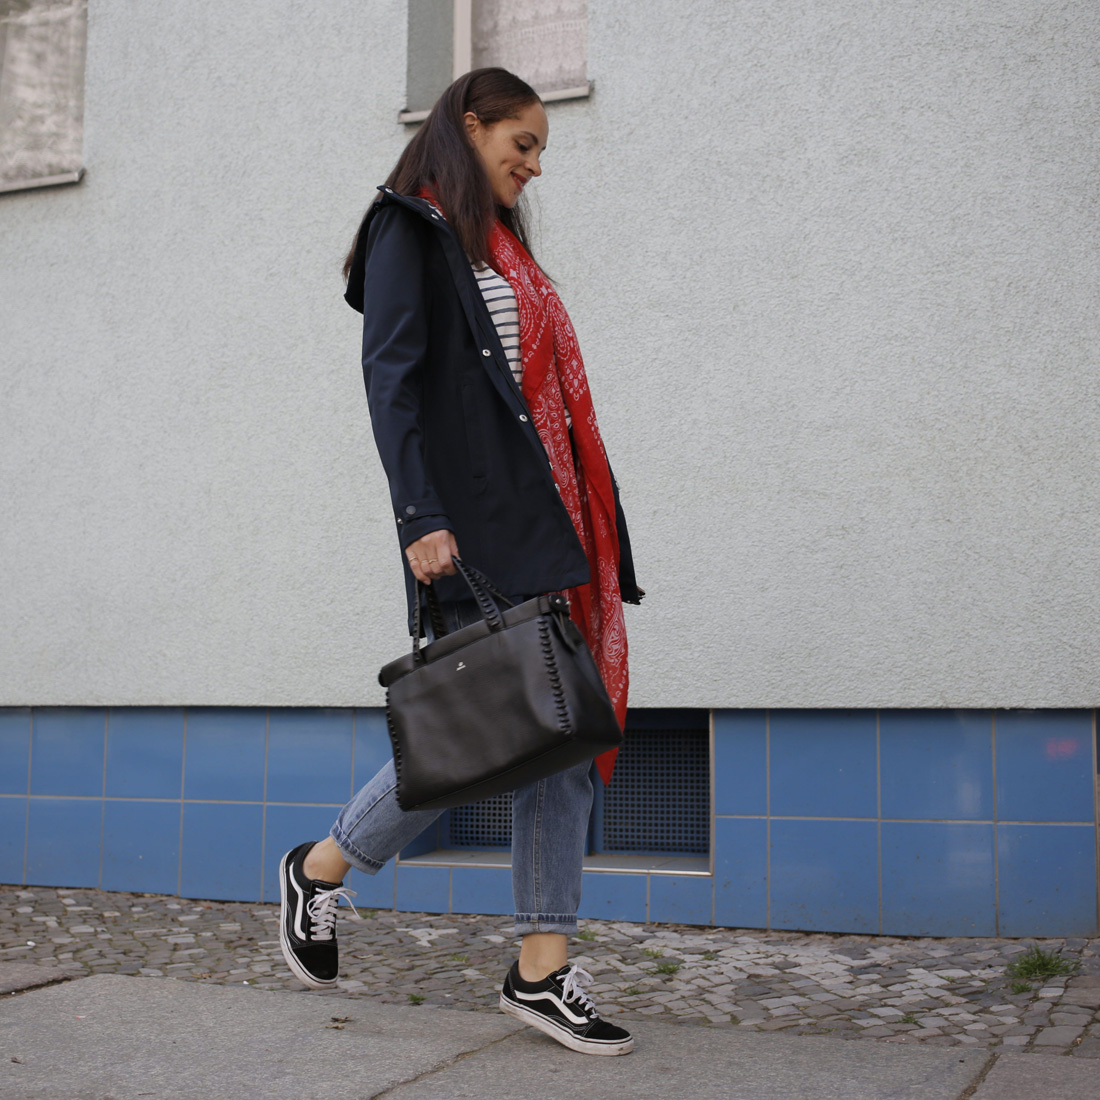 Berlin modeblogger Outfit idea - how to style a rain coat bomboogie Adax bag